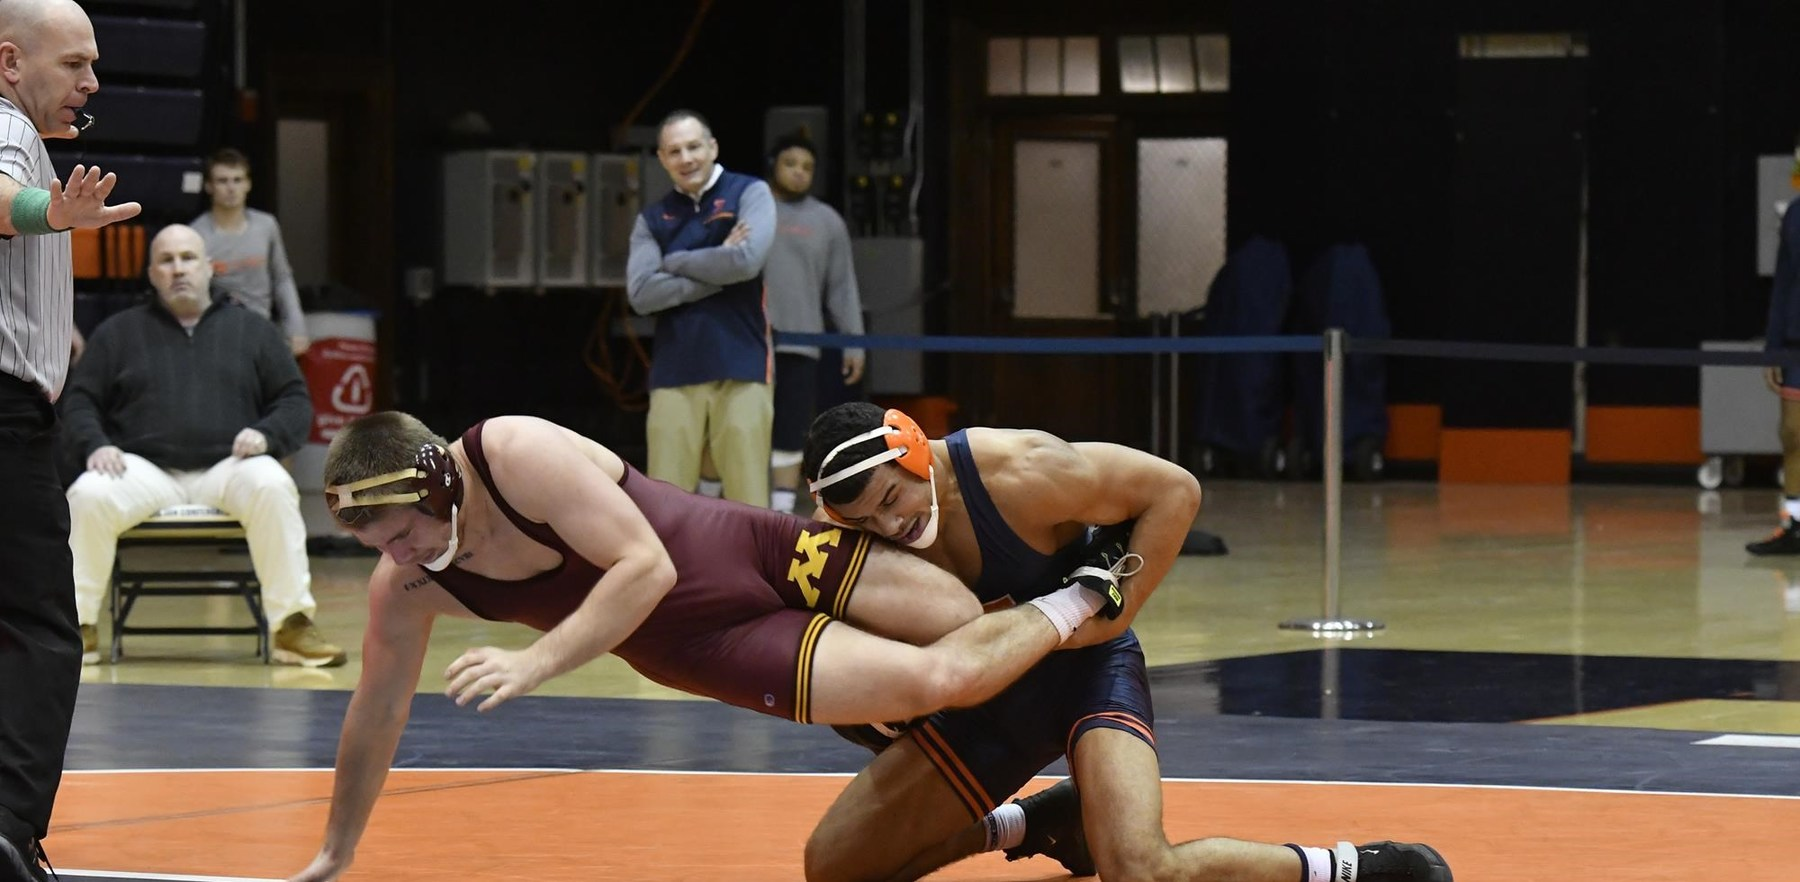 Illini wrestler grapples in a match against Minnesota